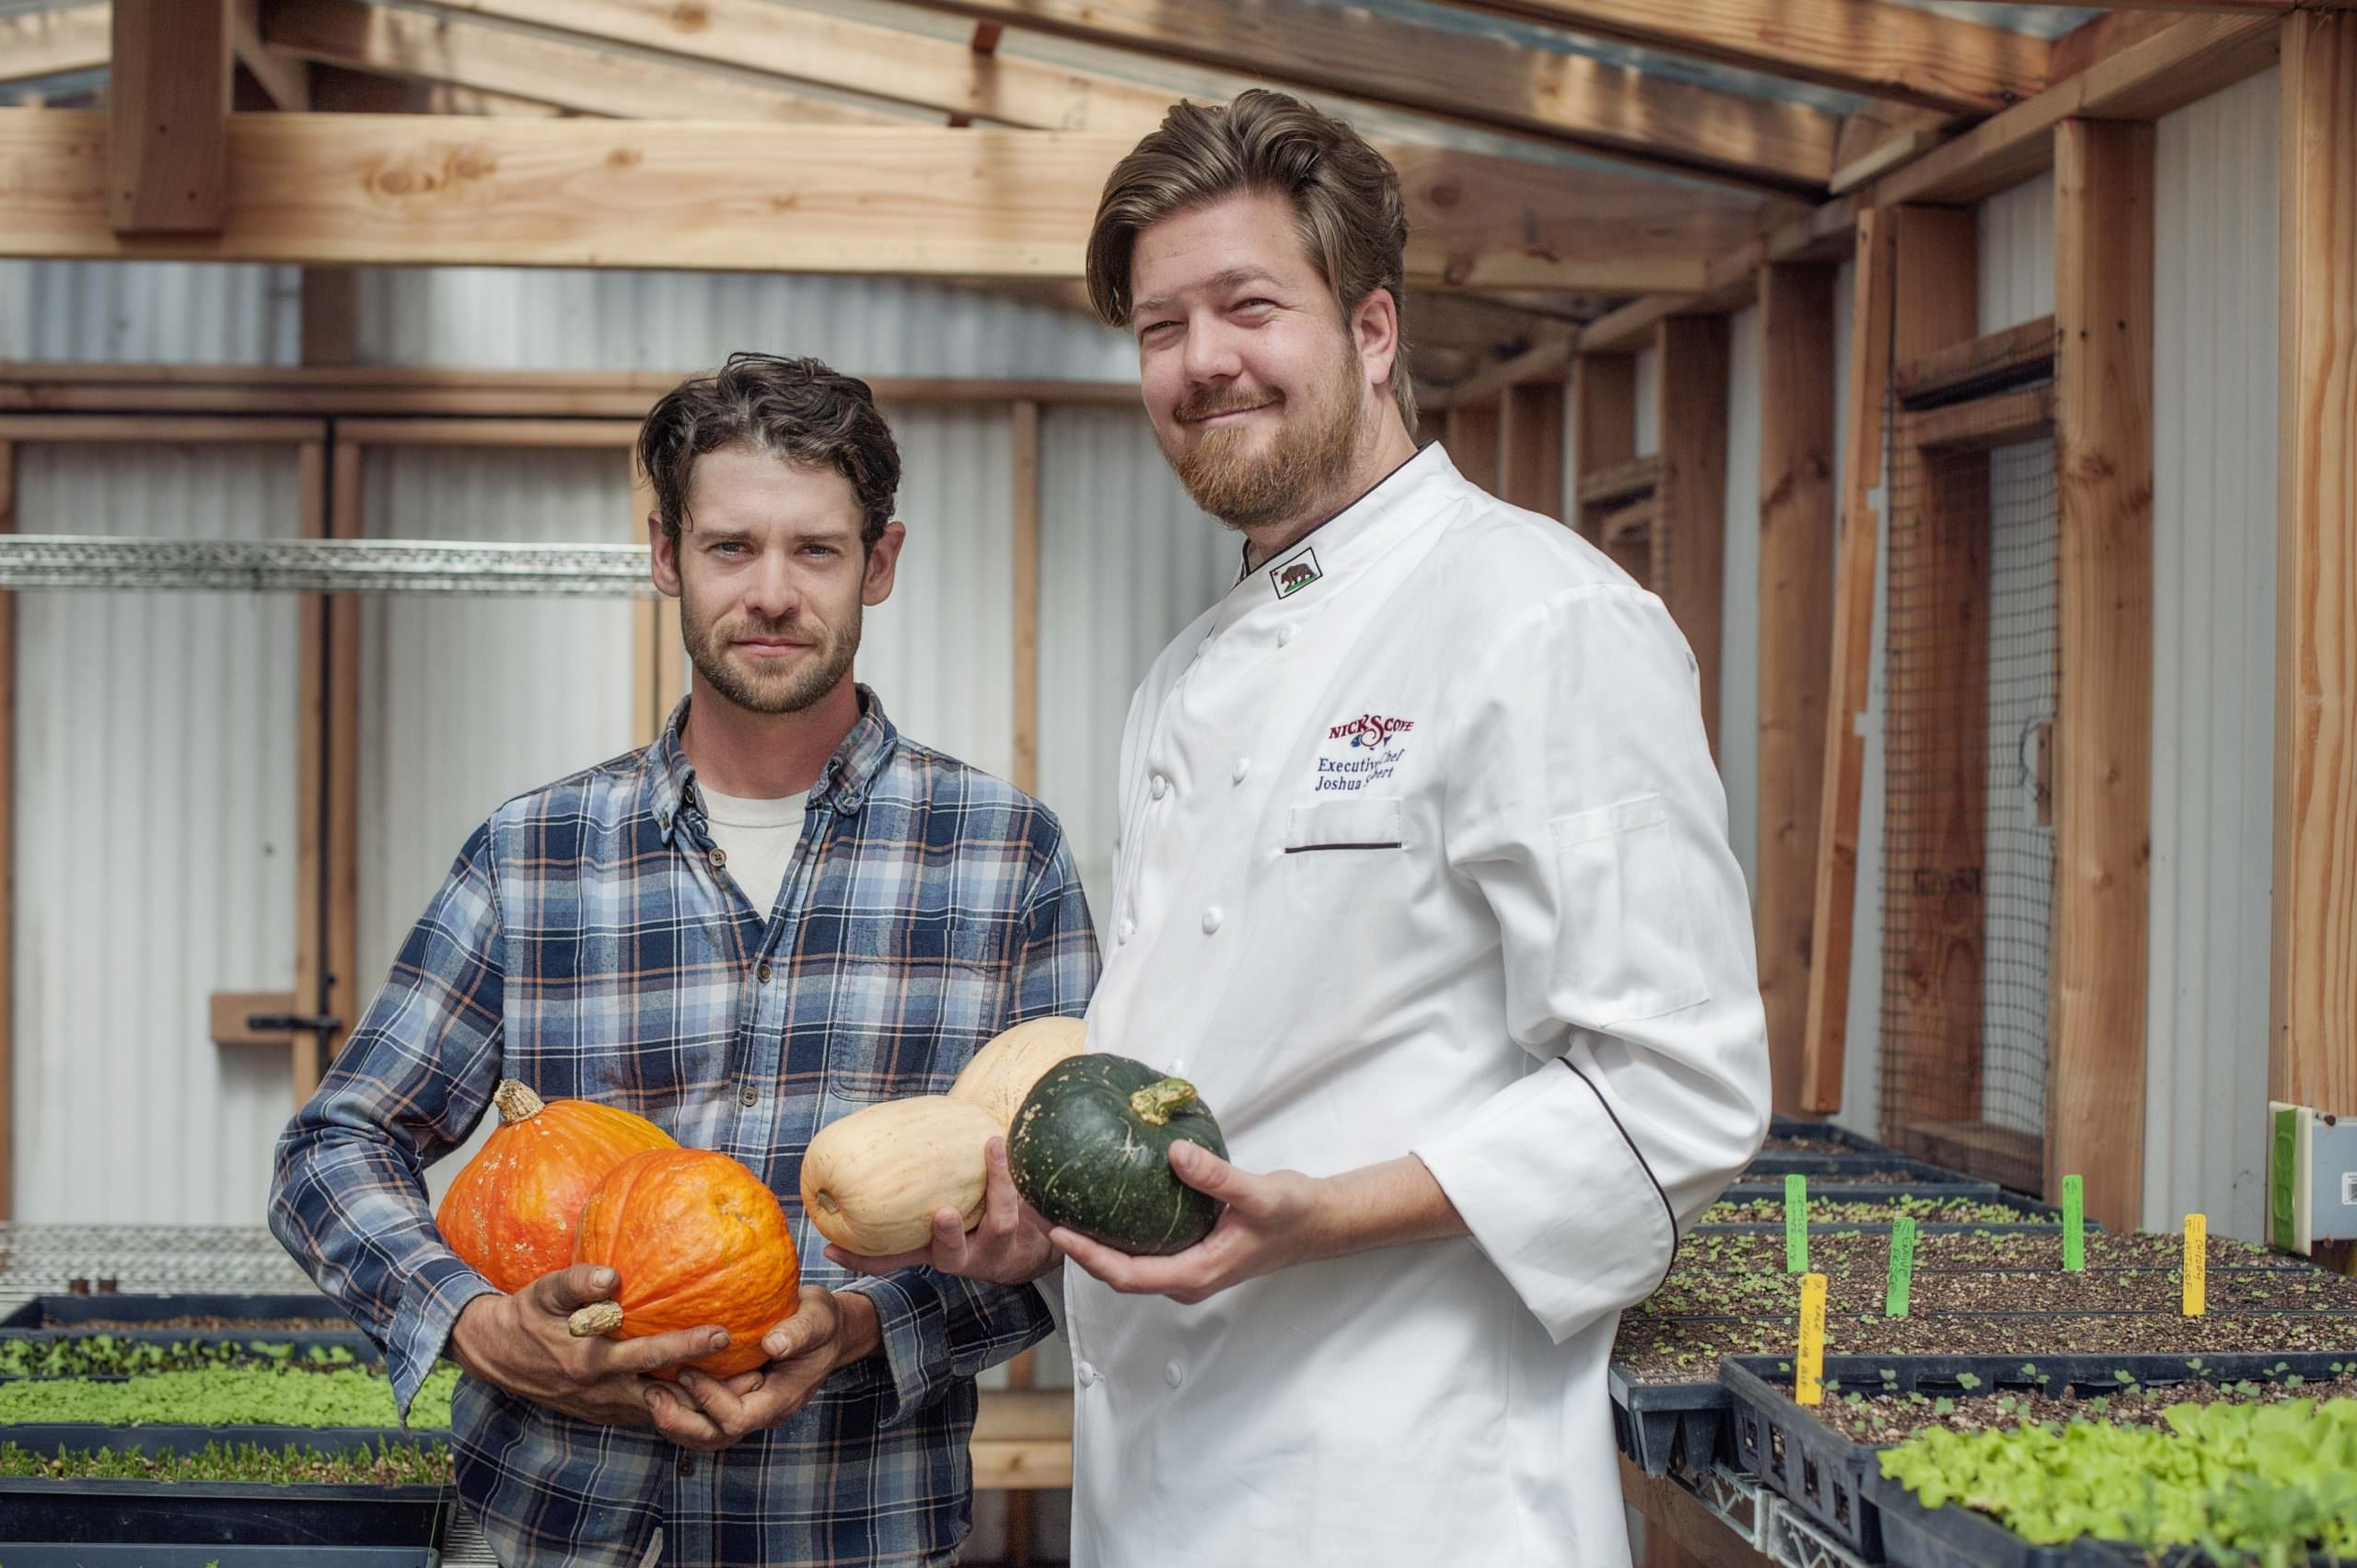 Nicks Cove Chef and Farmer with fall produce credit Dawn Cooper